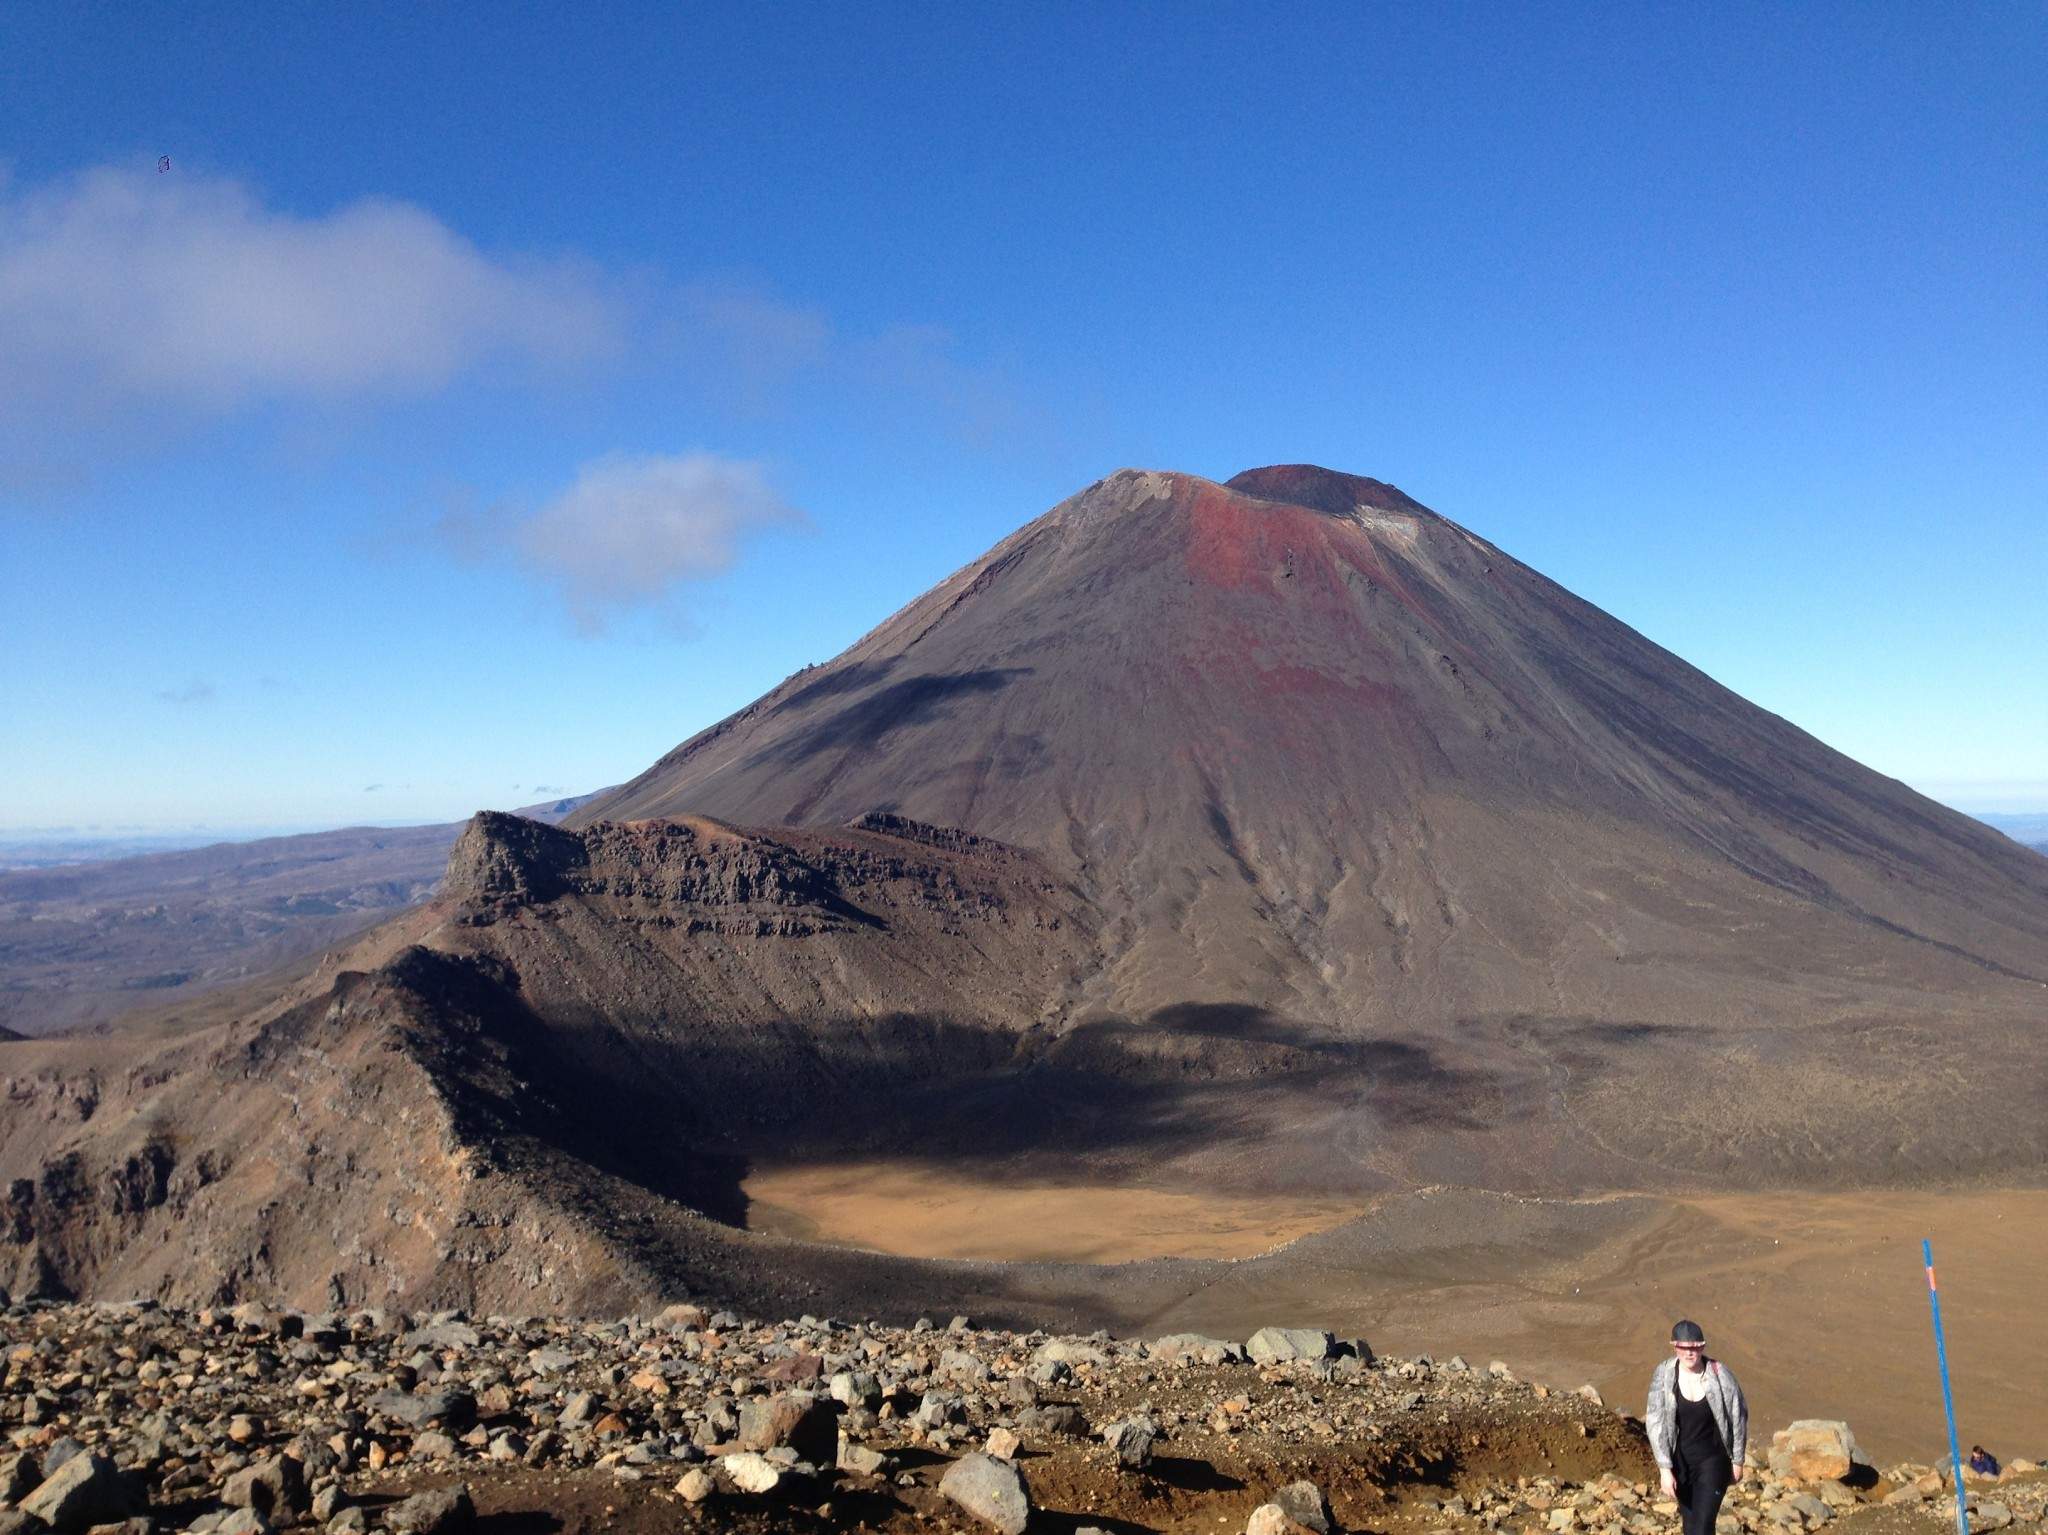 Mount Ngauruhoe, mount doom, lord of the rings, mountain, volcano, walking, tramping, great walks, tongariro,